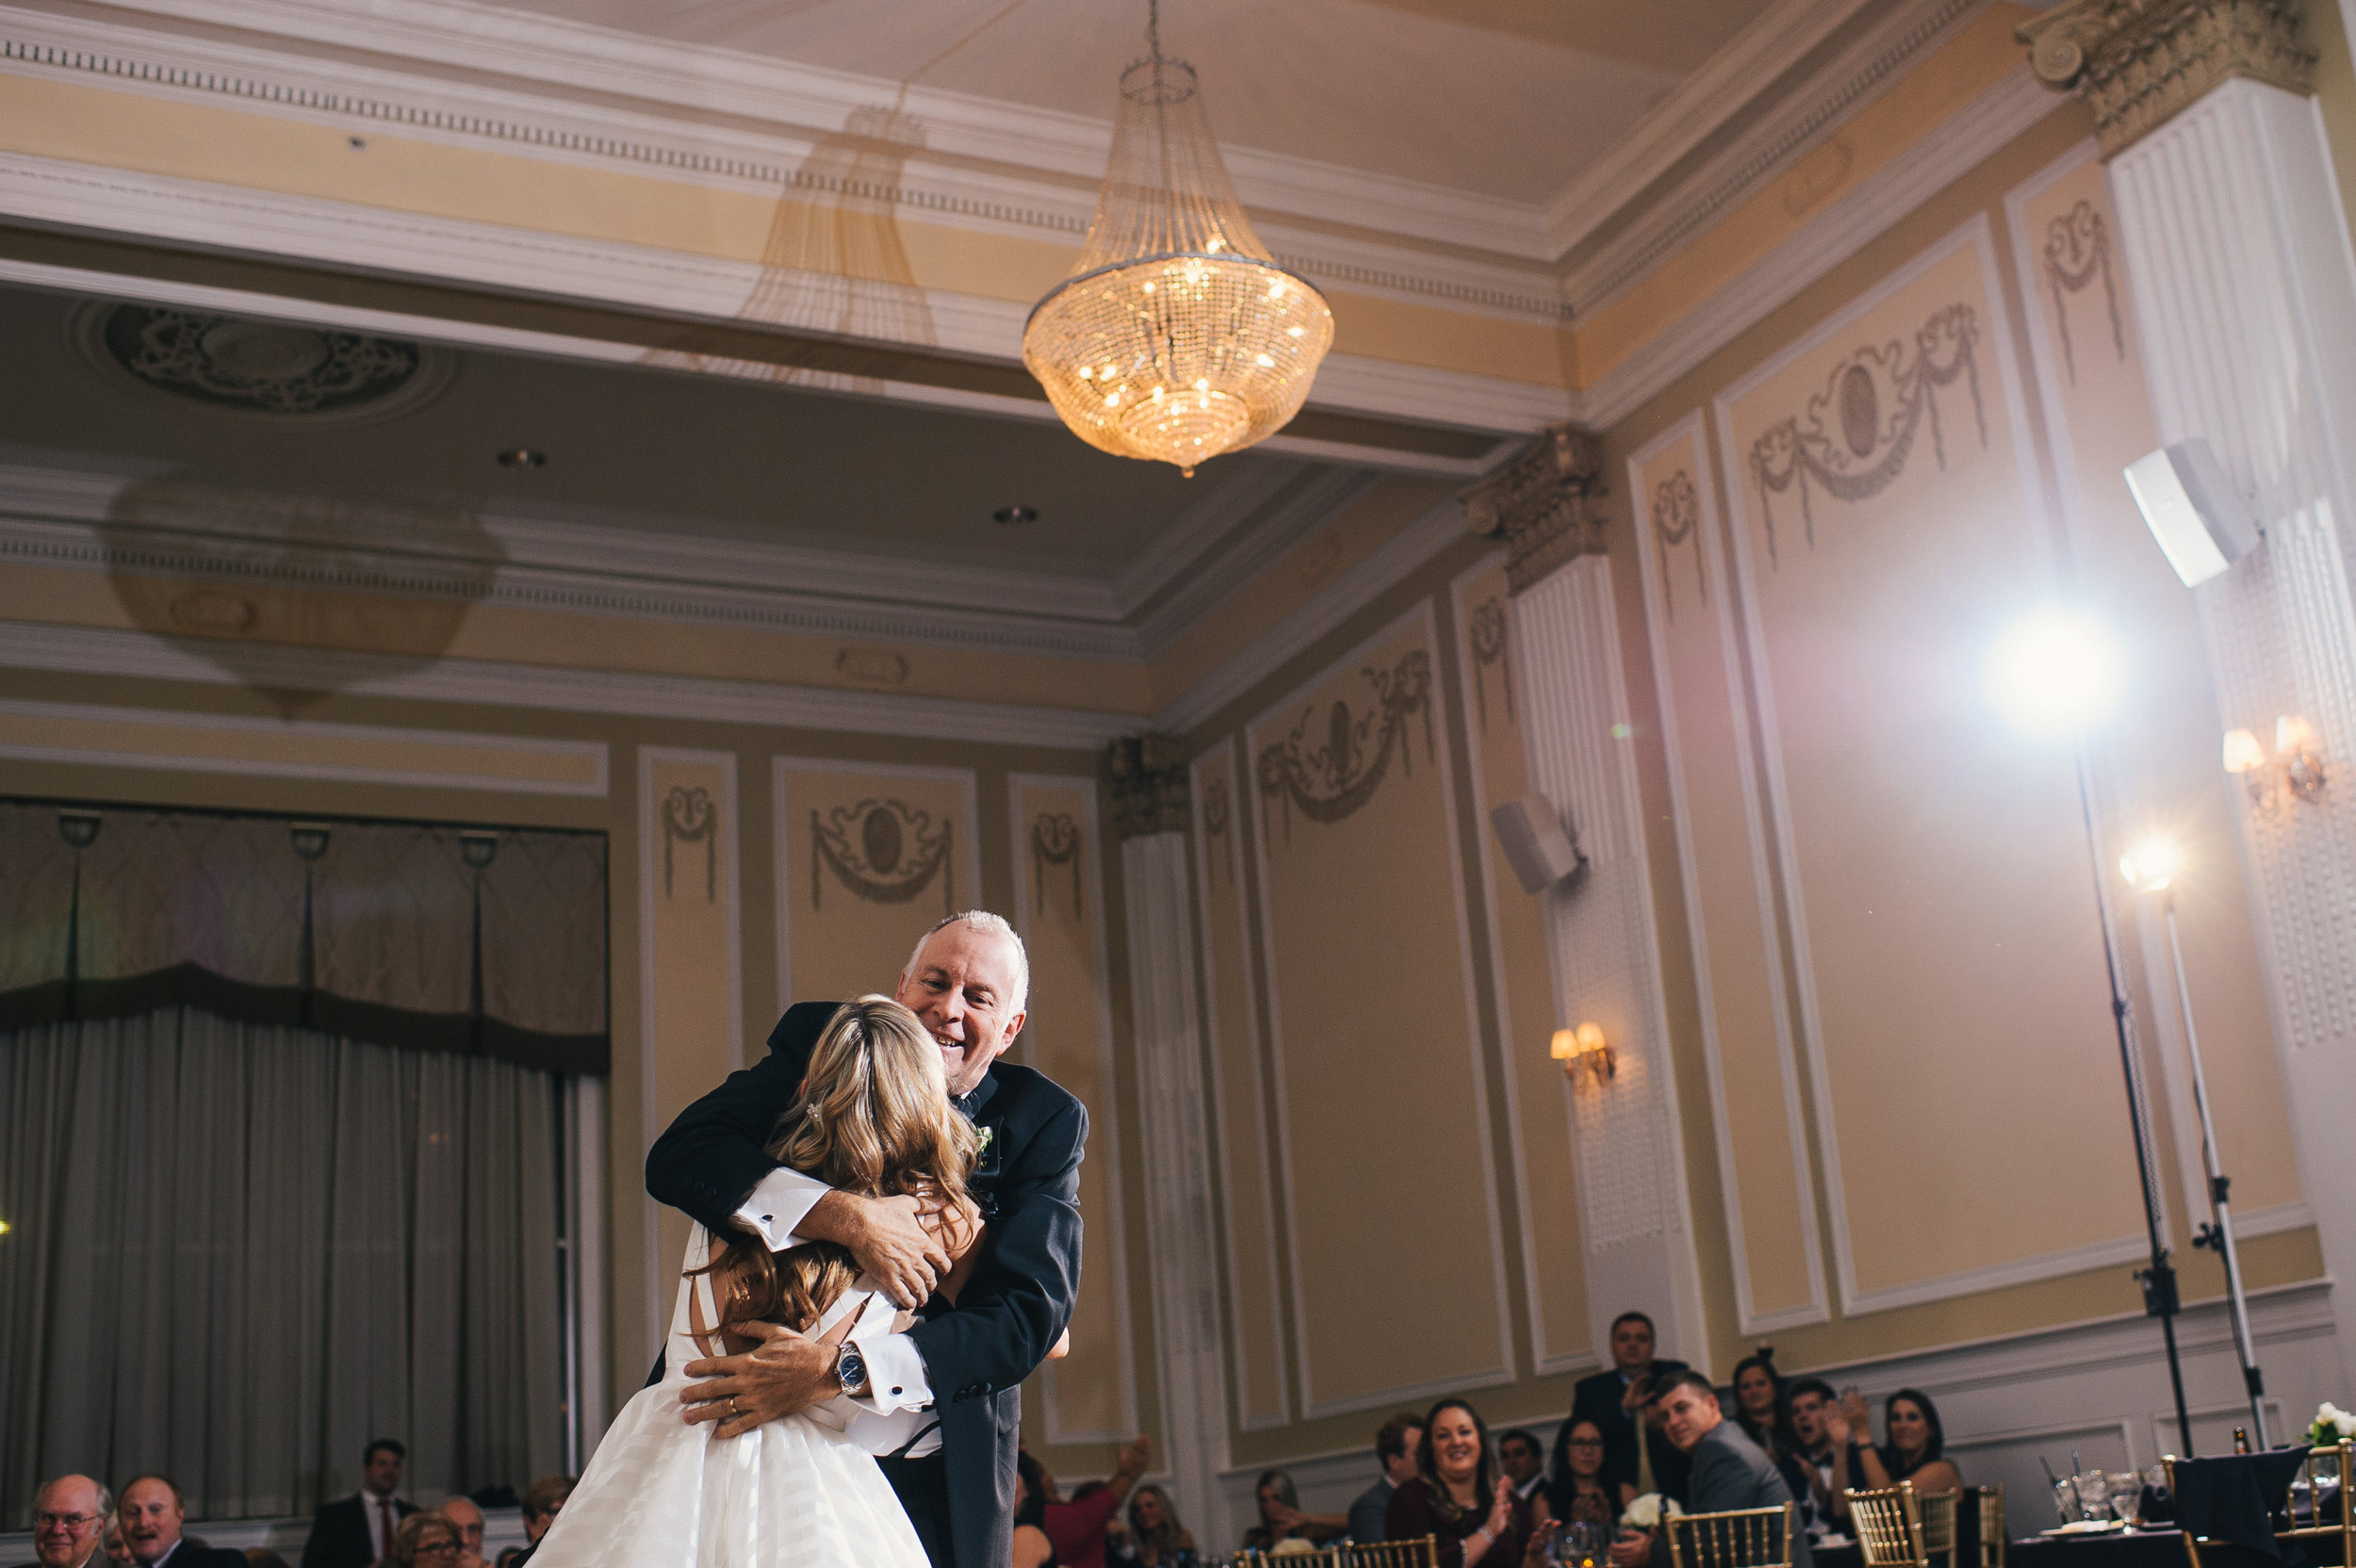 Bride and her father share their father/daughter dance for black, white, and gold wedding in Buffalo, NY planned by Exhale Events. Find more wedding inspiration at exhale-events.com!